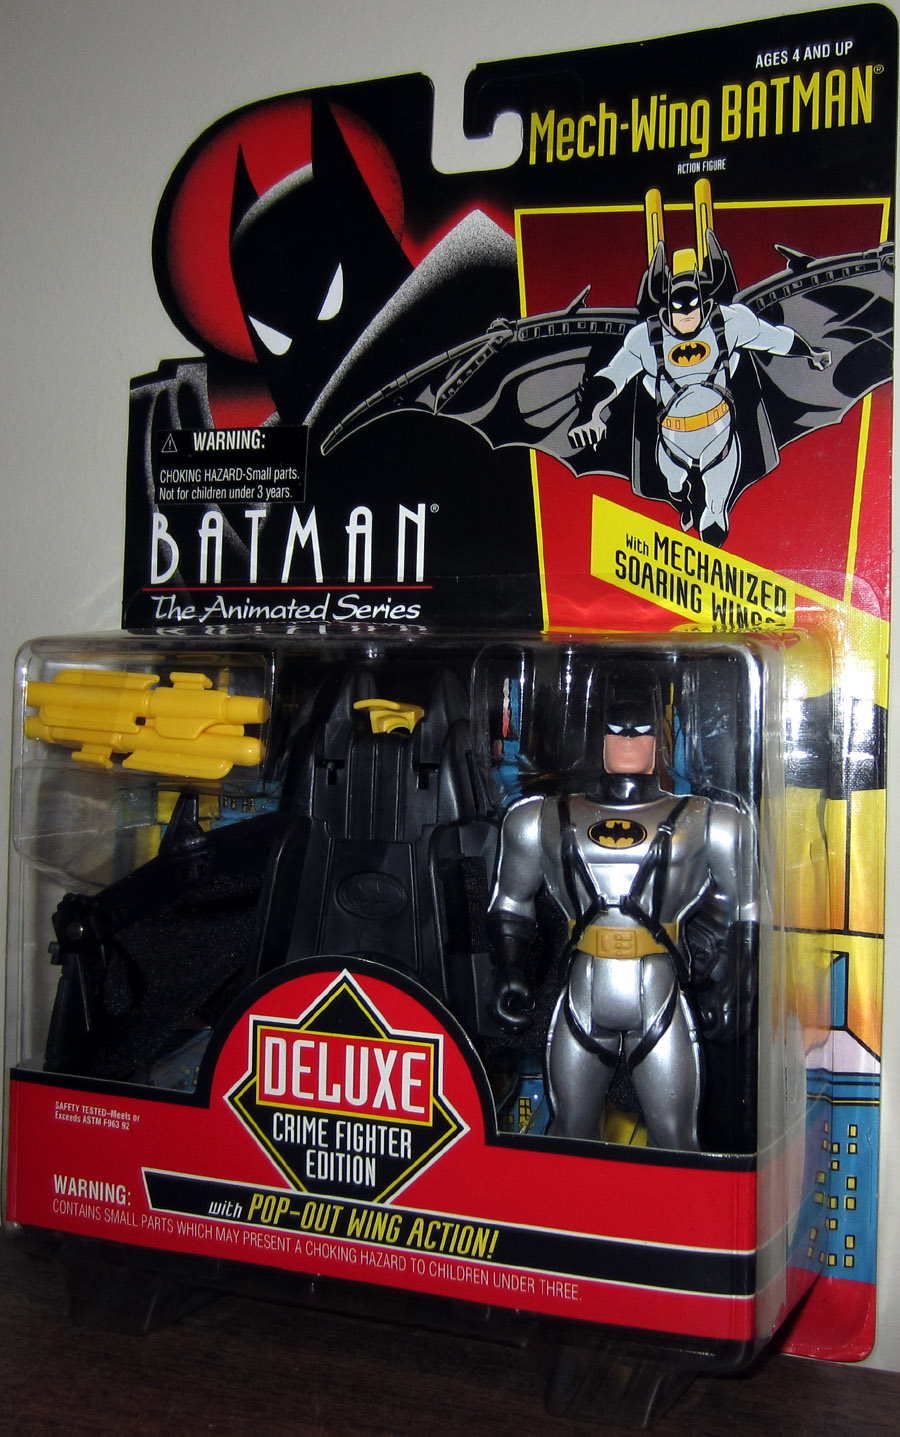 Mech-Wing Batman (Batman The Animated Series)